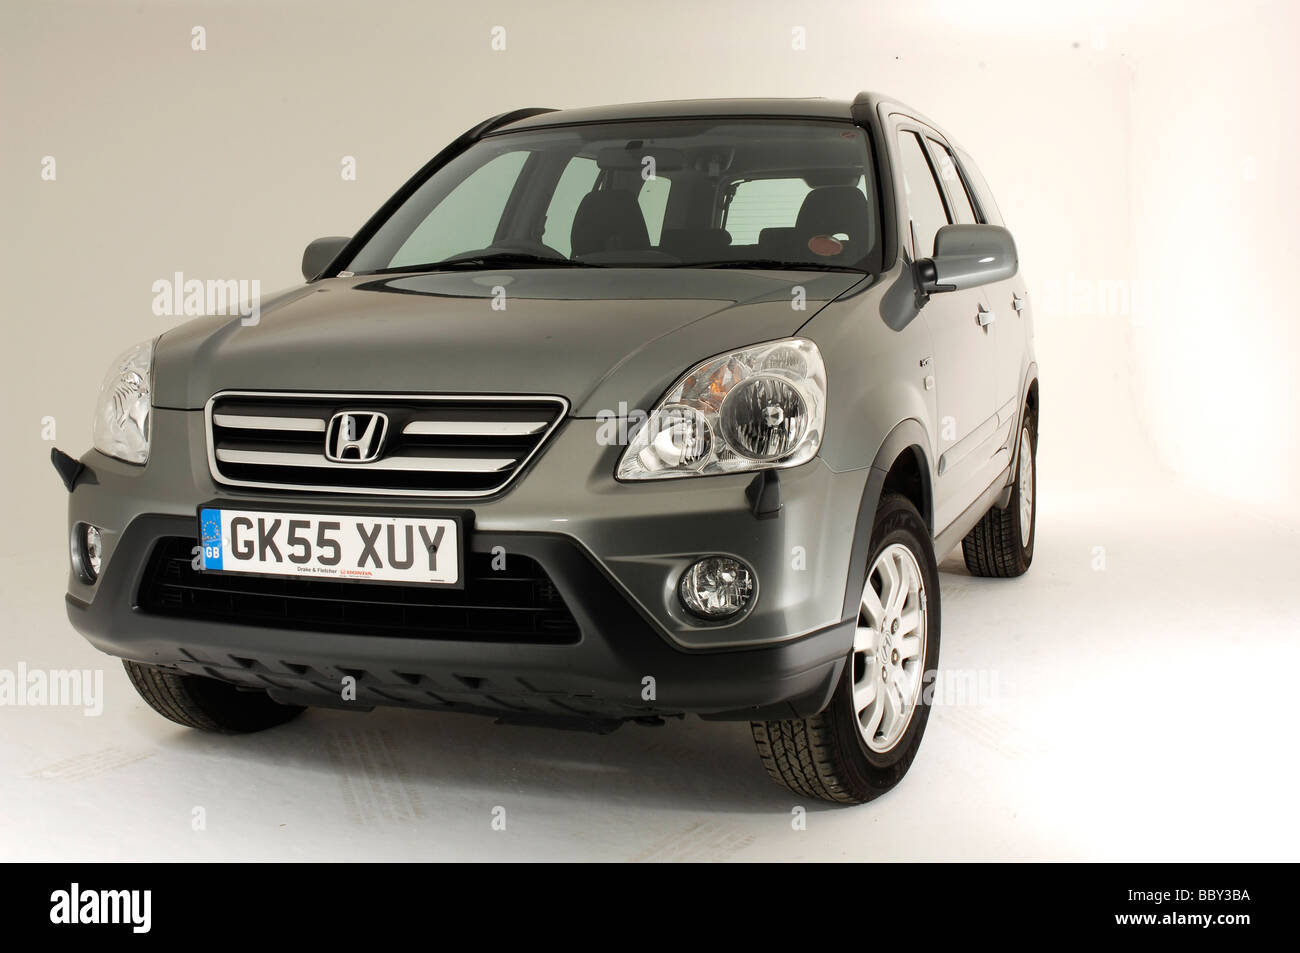 Honda CRV 2005Stock Photo